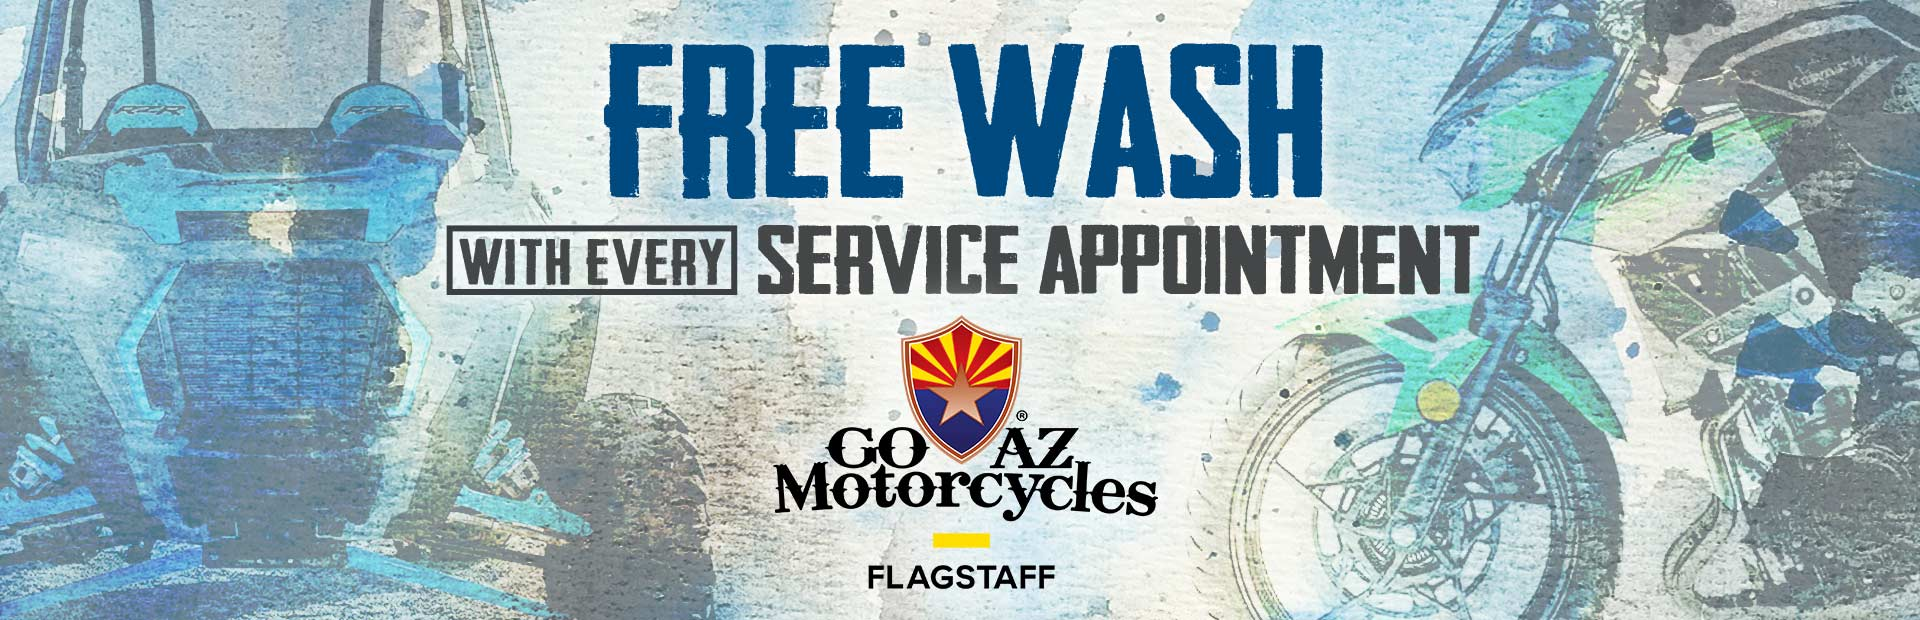 Free wash with every service appt.